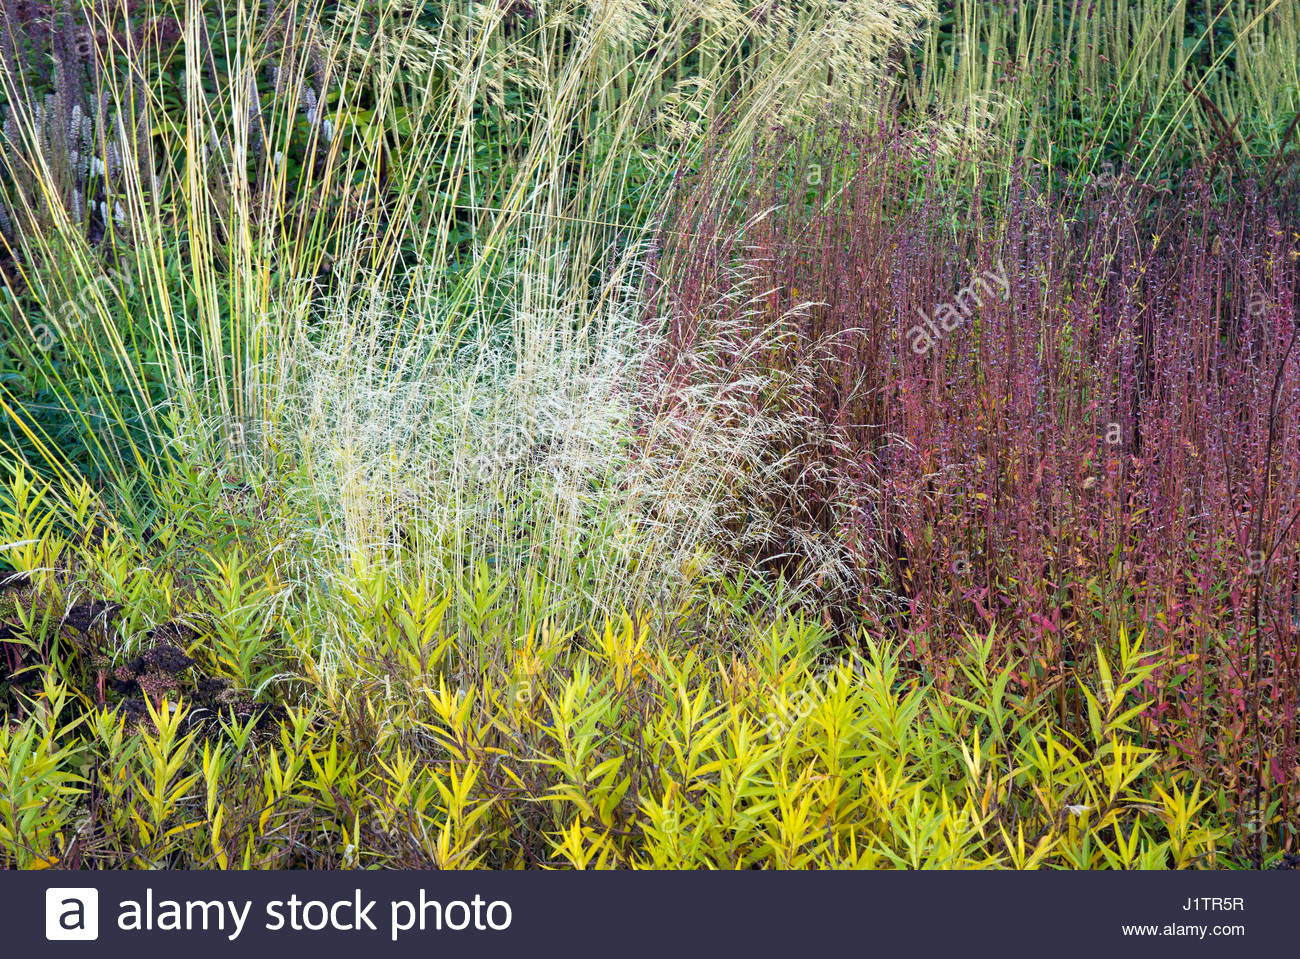 Oudolf borders stock photos oudolf borders stock images for Small ornamental grasses for borders